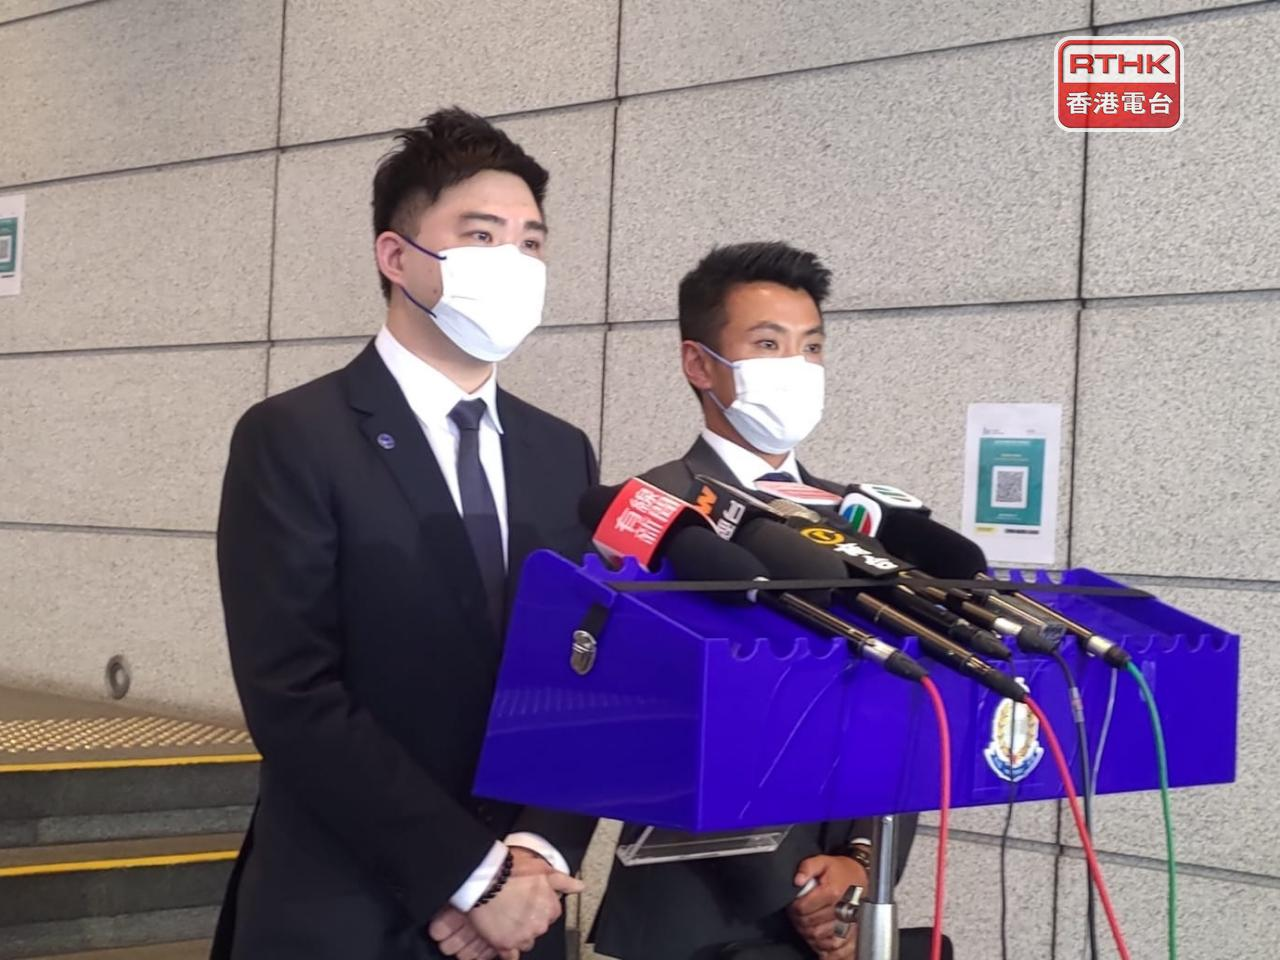 The police made the arrest on Monday and seized two mobile phones. Photo: RTHK